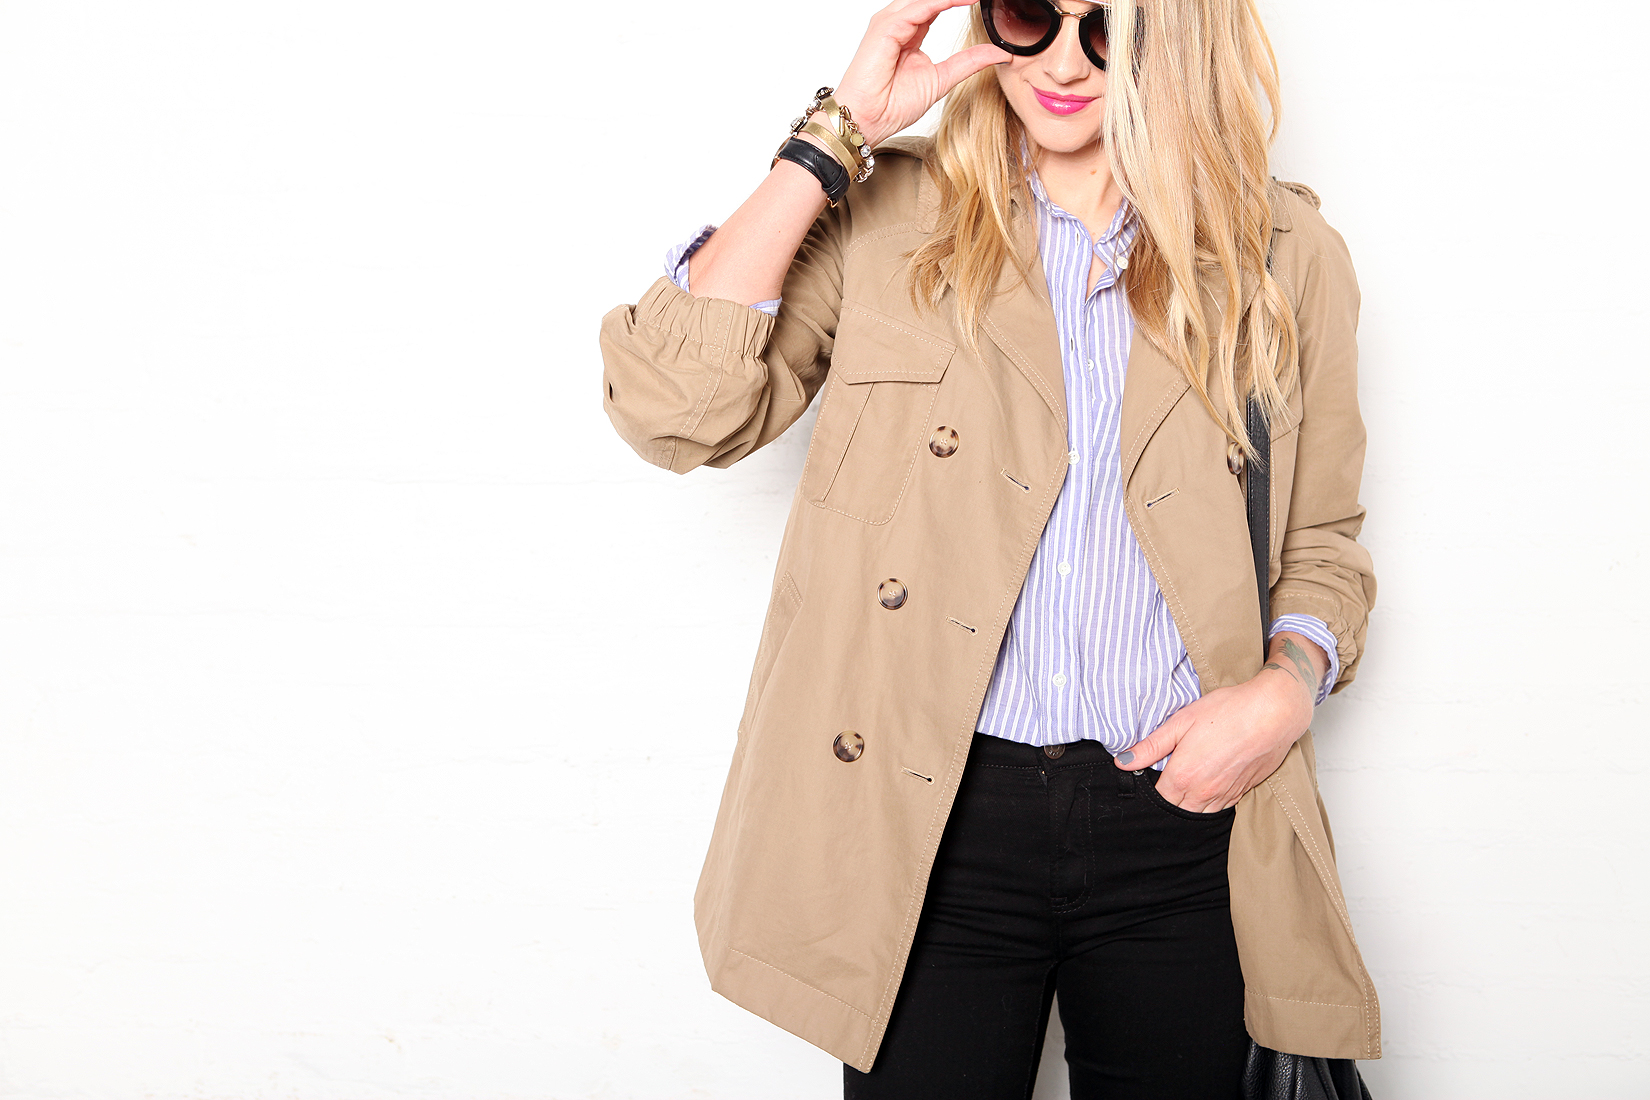 fashion-jackson-loft-cargo-swing-trench-jcrew-blue-white-stripe-shirt-black-skinny-jeans-prada-retro-sunglasses